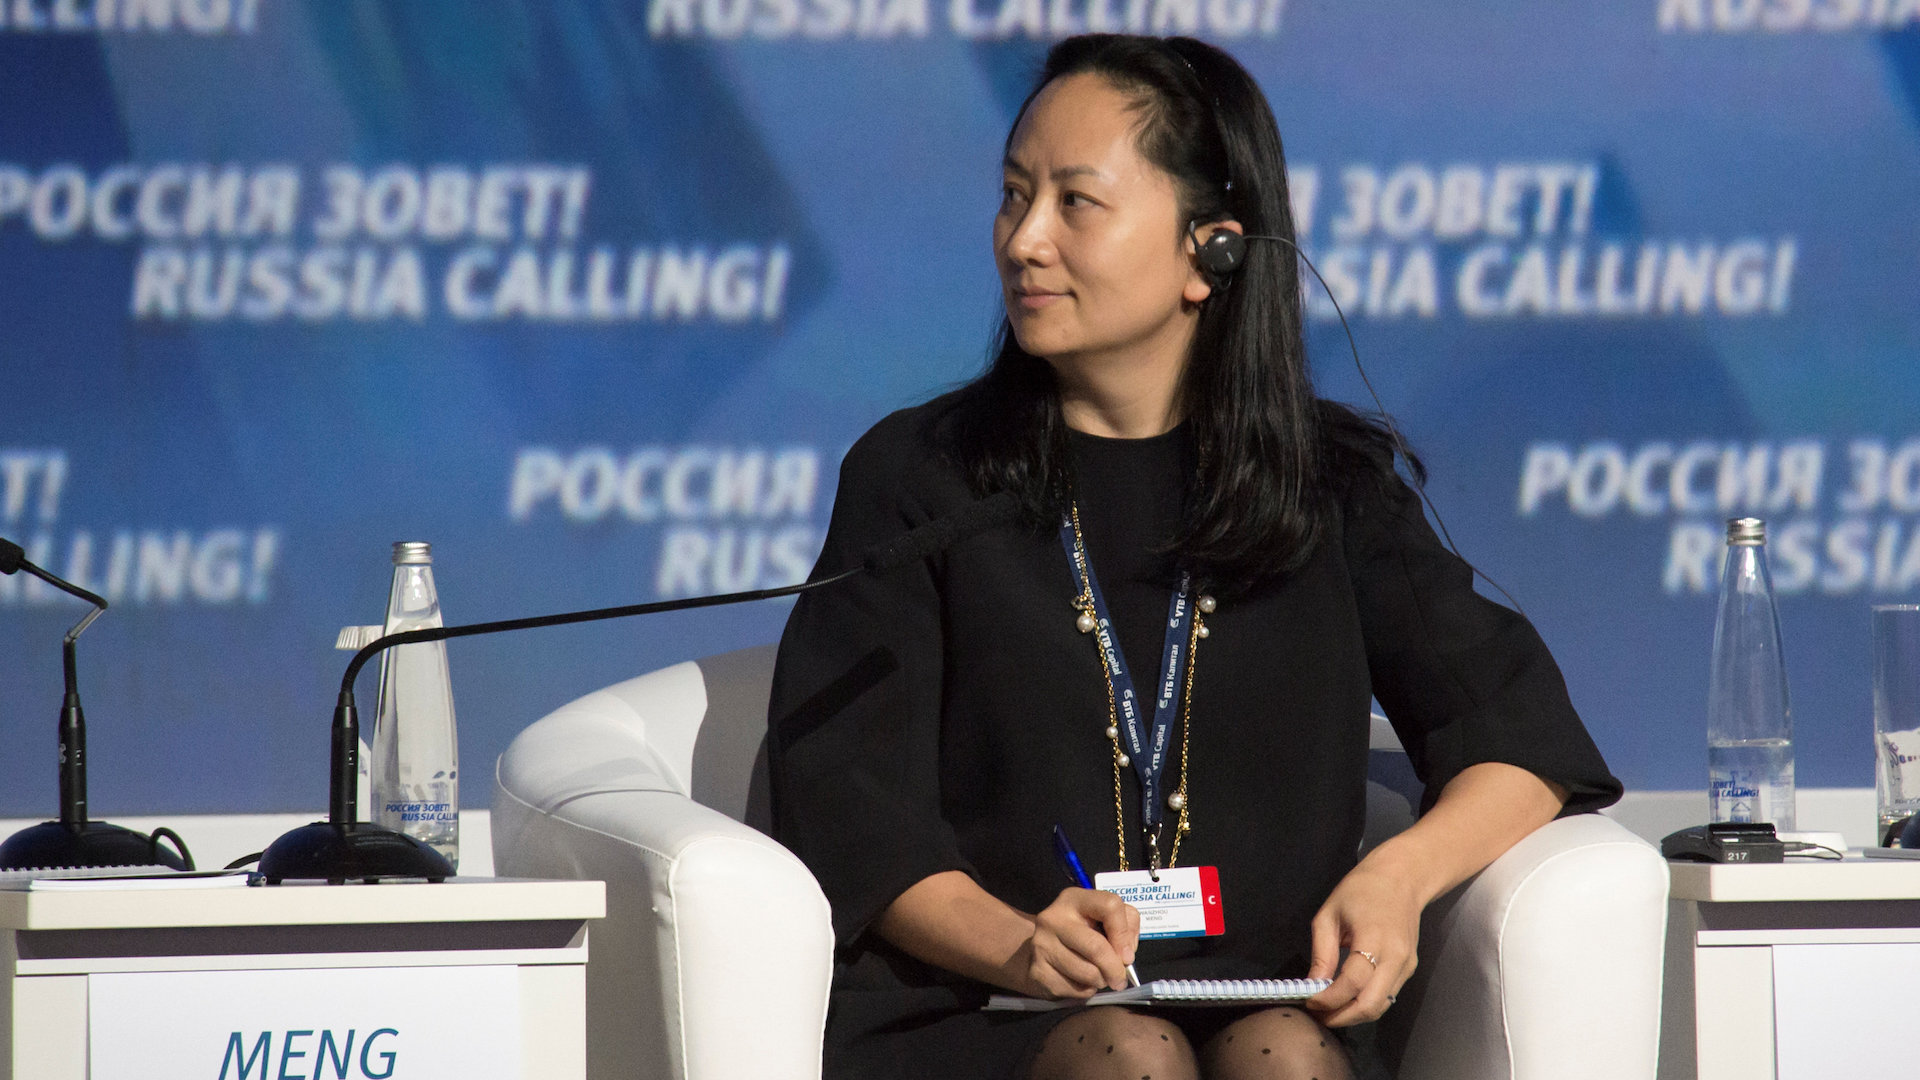 Huawei executive fights for release in Canada bail hearing that will continue into third day